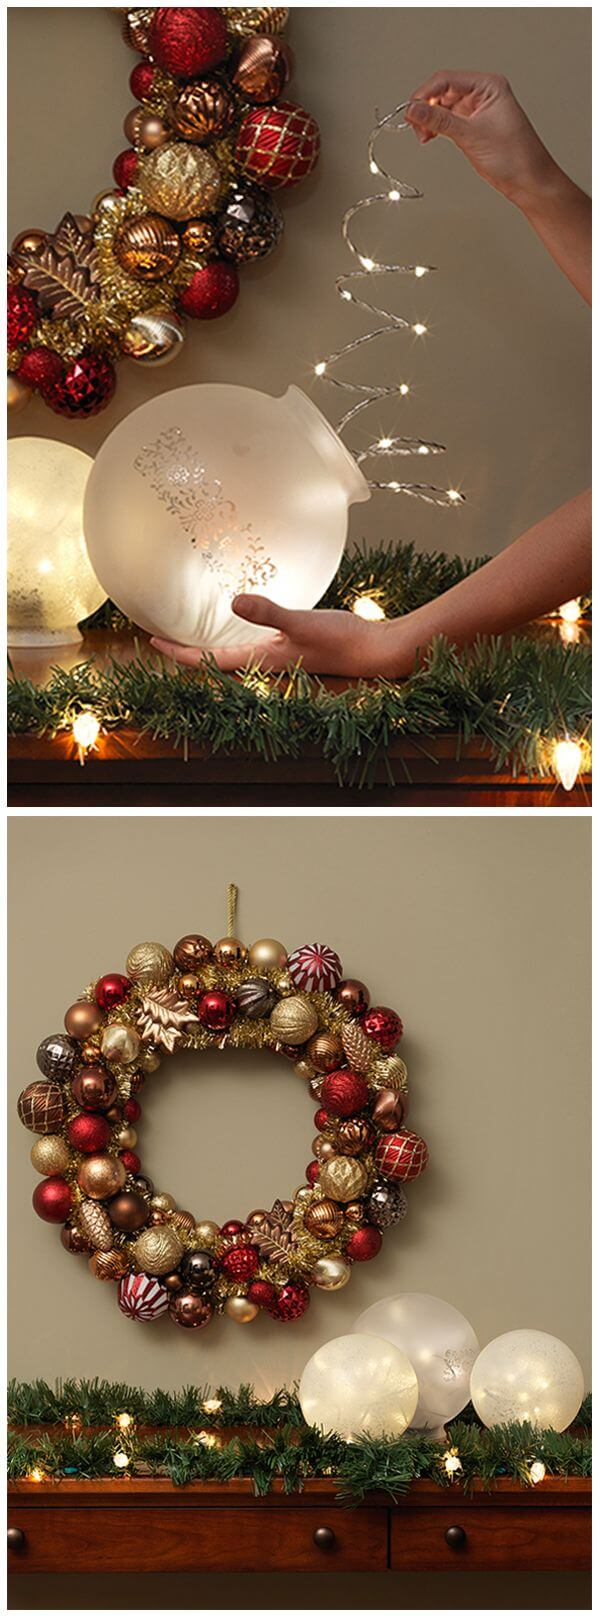 Transform Light Fixtures into Twinkling Globes